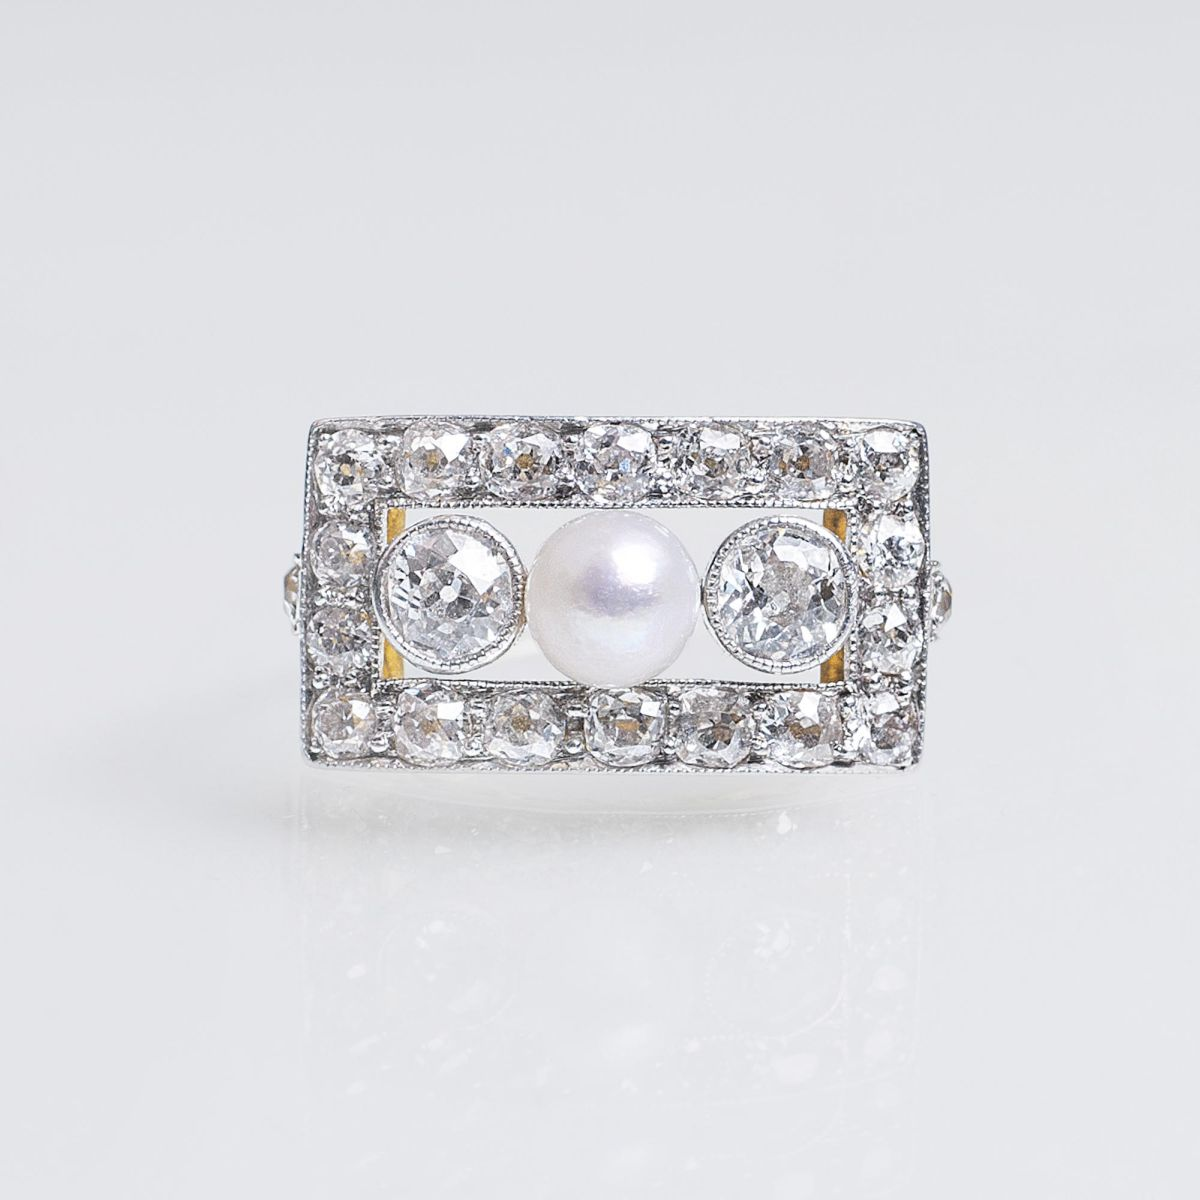 An Art-déco Ring with Old Cut Diamonds and Pearl